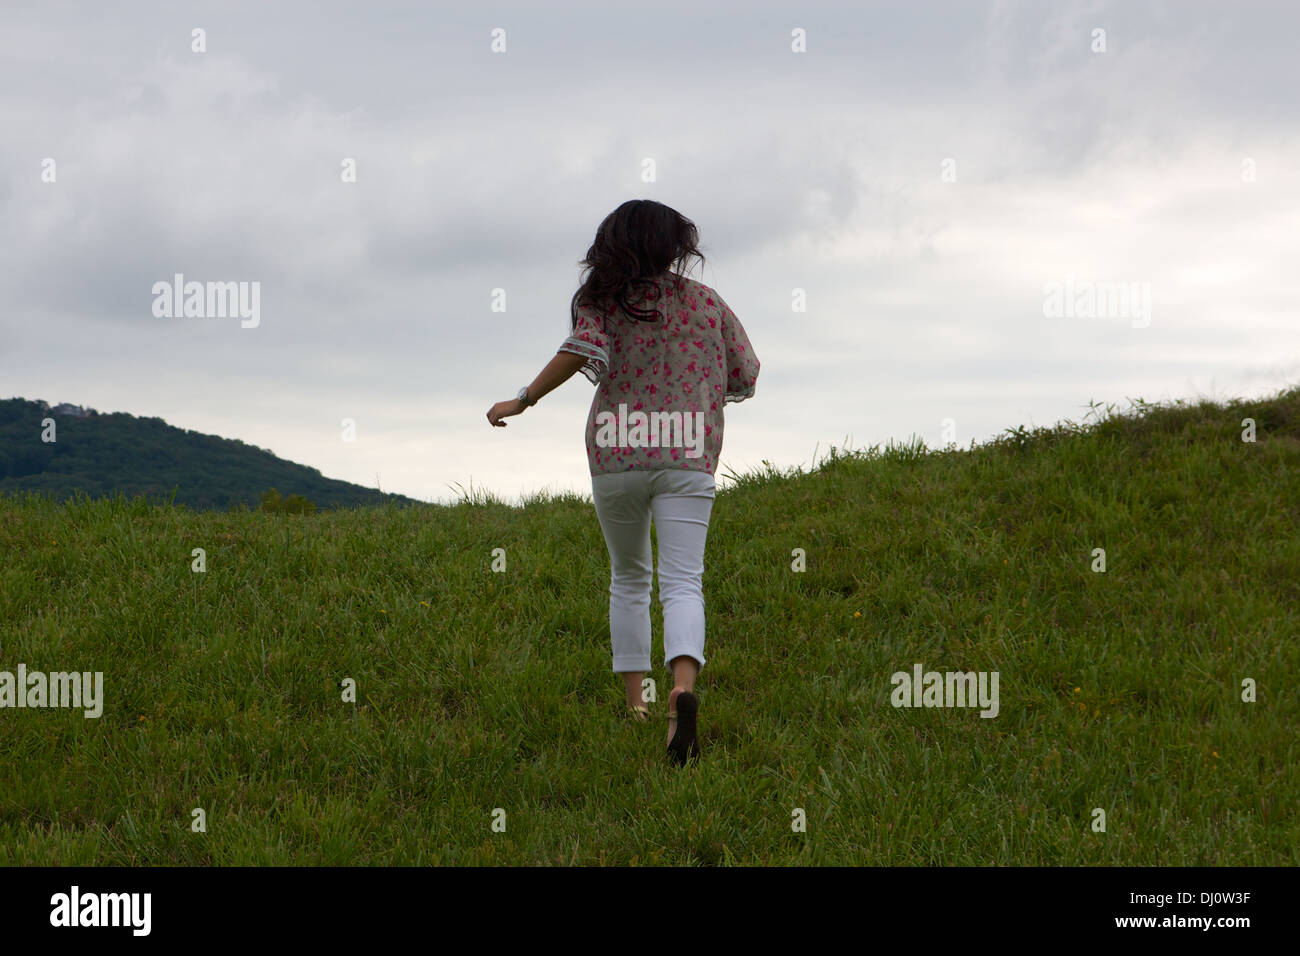 Young Chinese woman seen from behind as she runs away from the camera up a green hill. Stock Photo